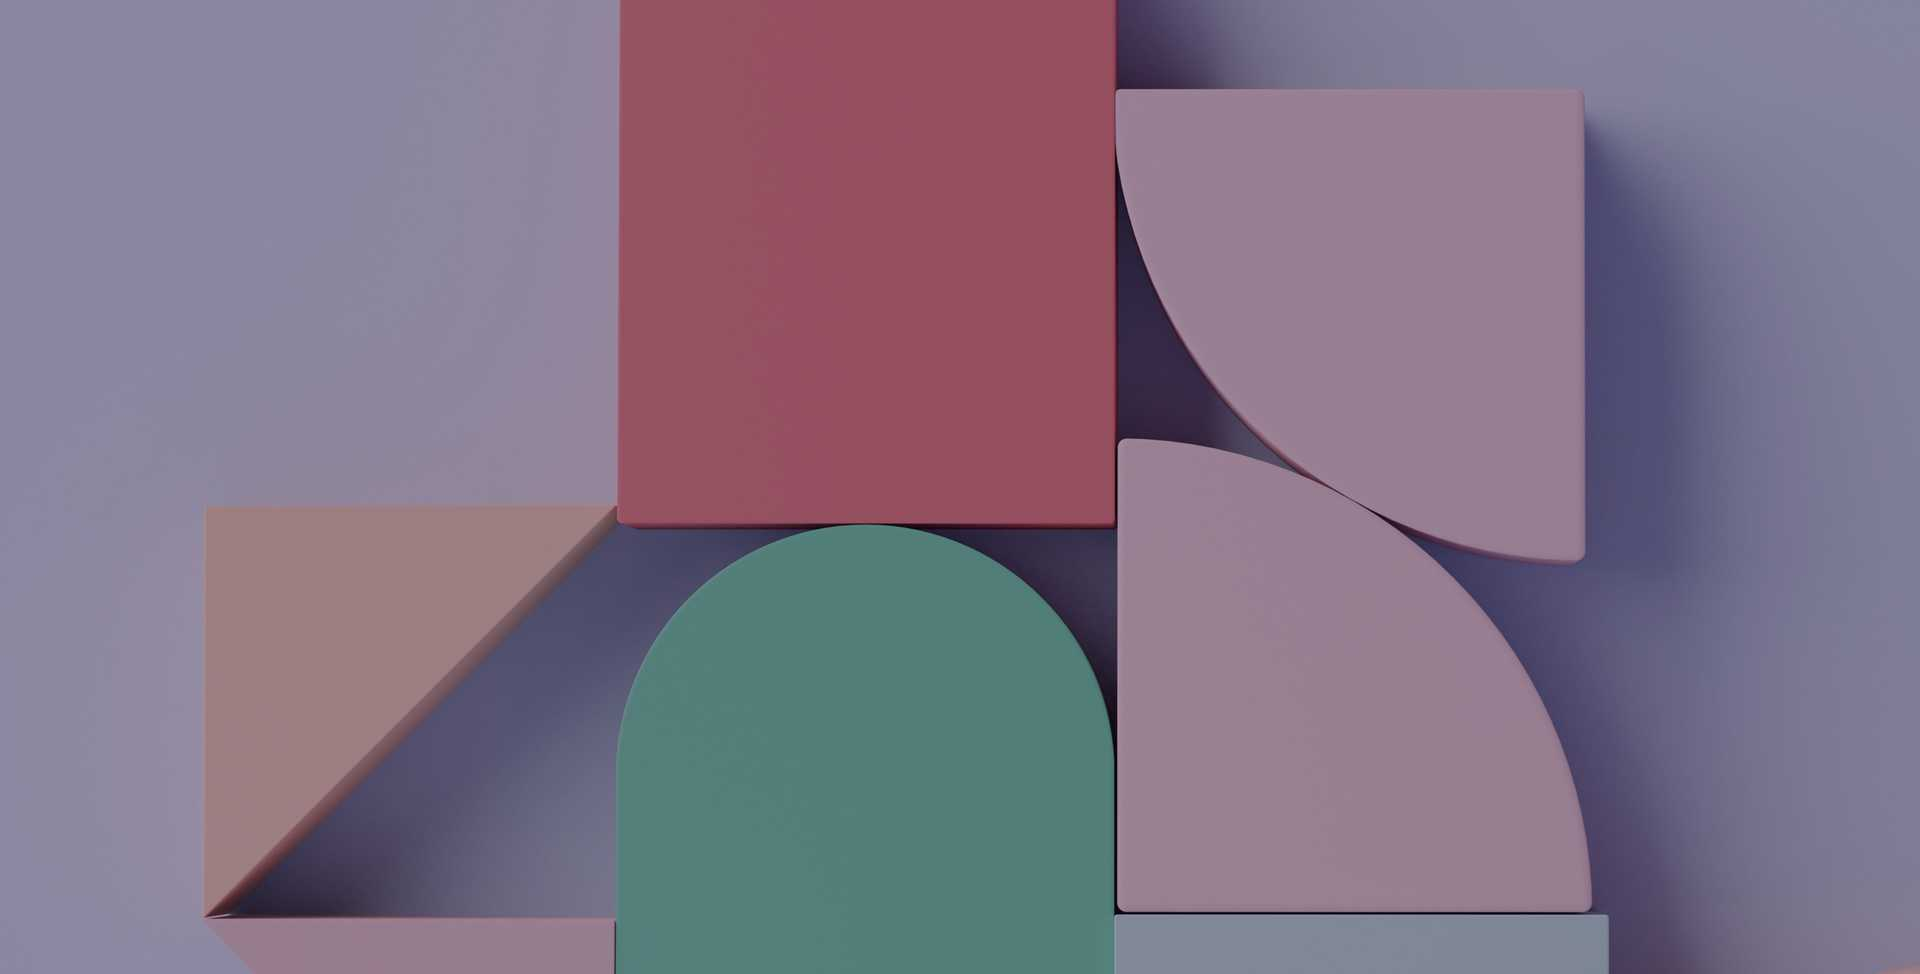 3D rendering of pink, green, and purple shapes against a light purple background